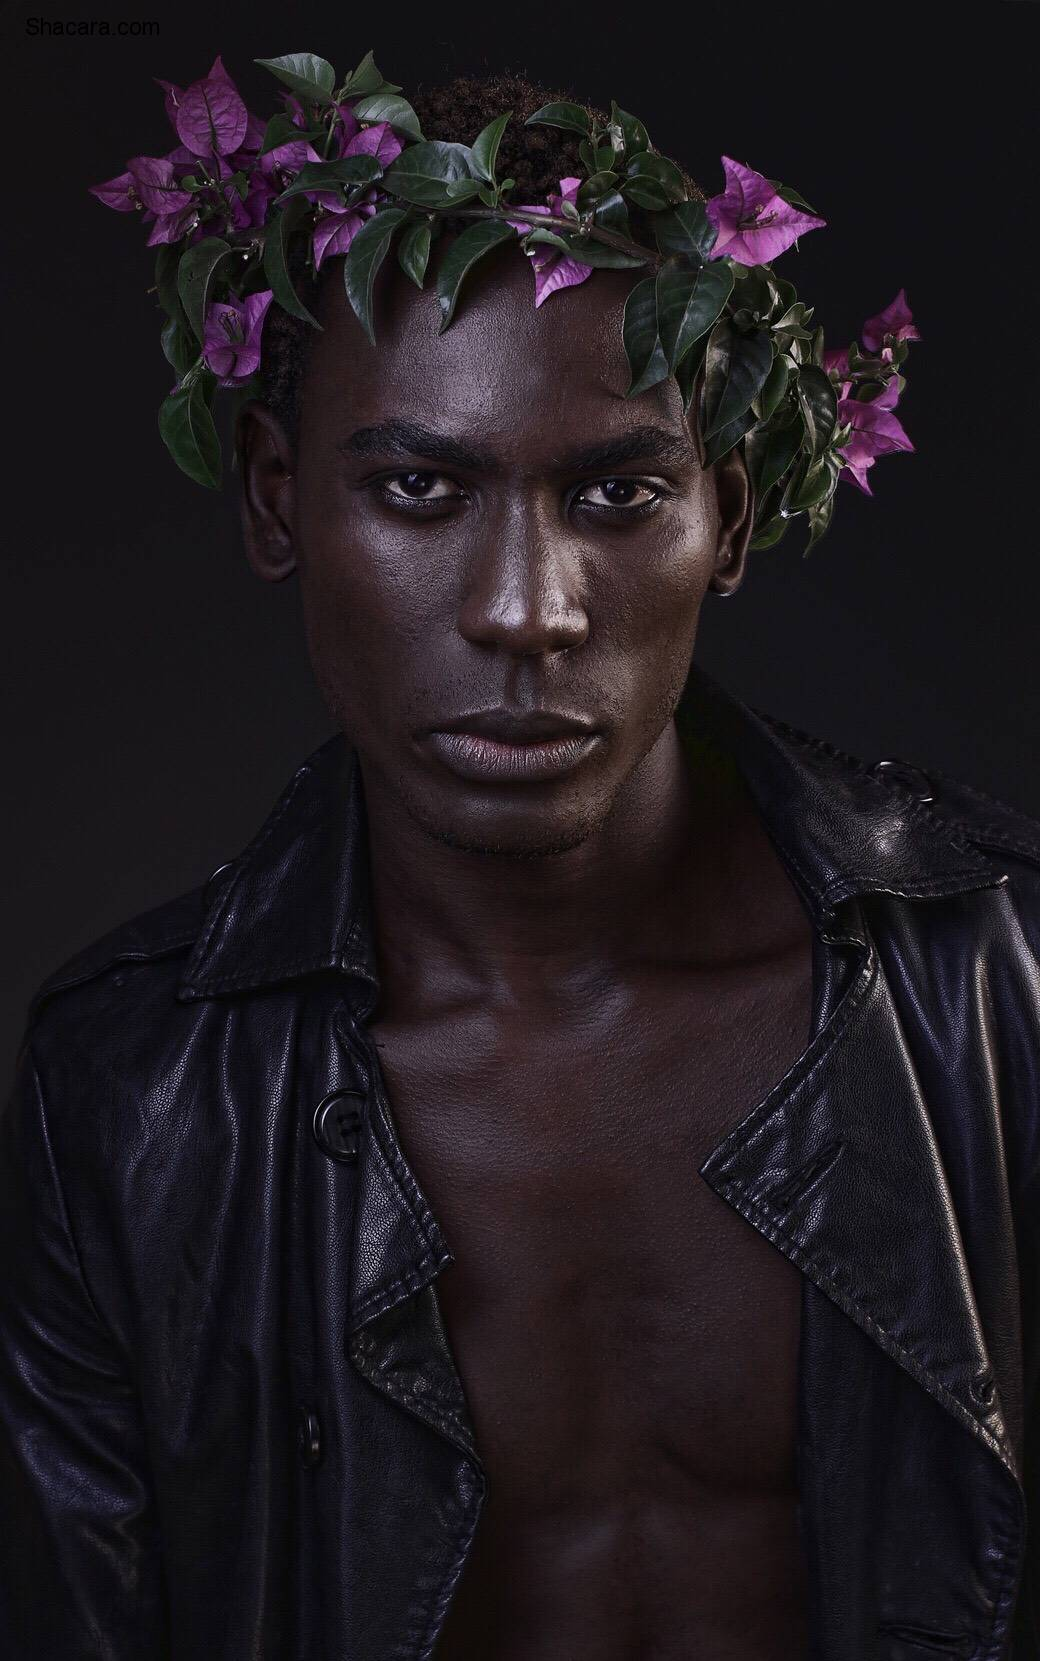 Hot Shots: The Day A Man Wore A Flower Crown; Shoot By William Nsai